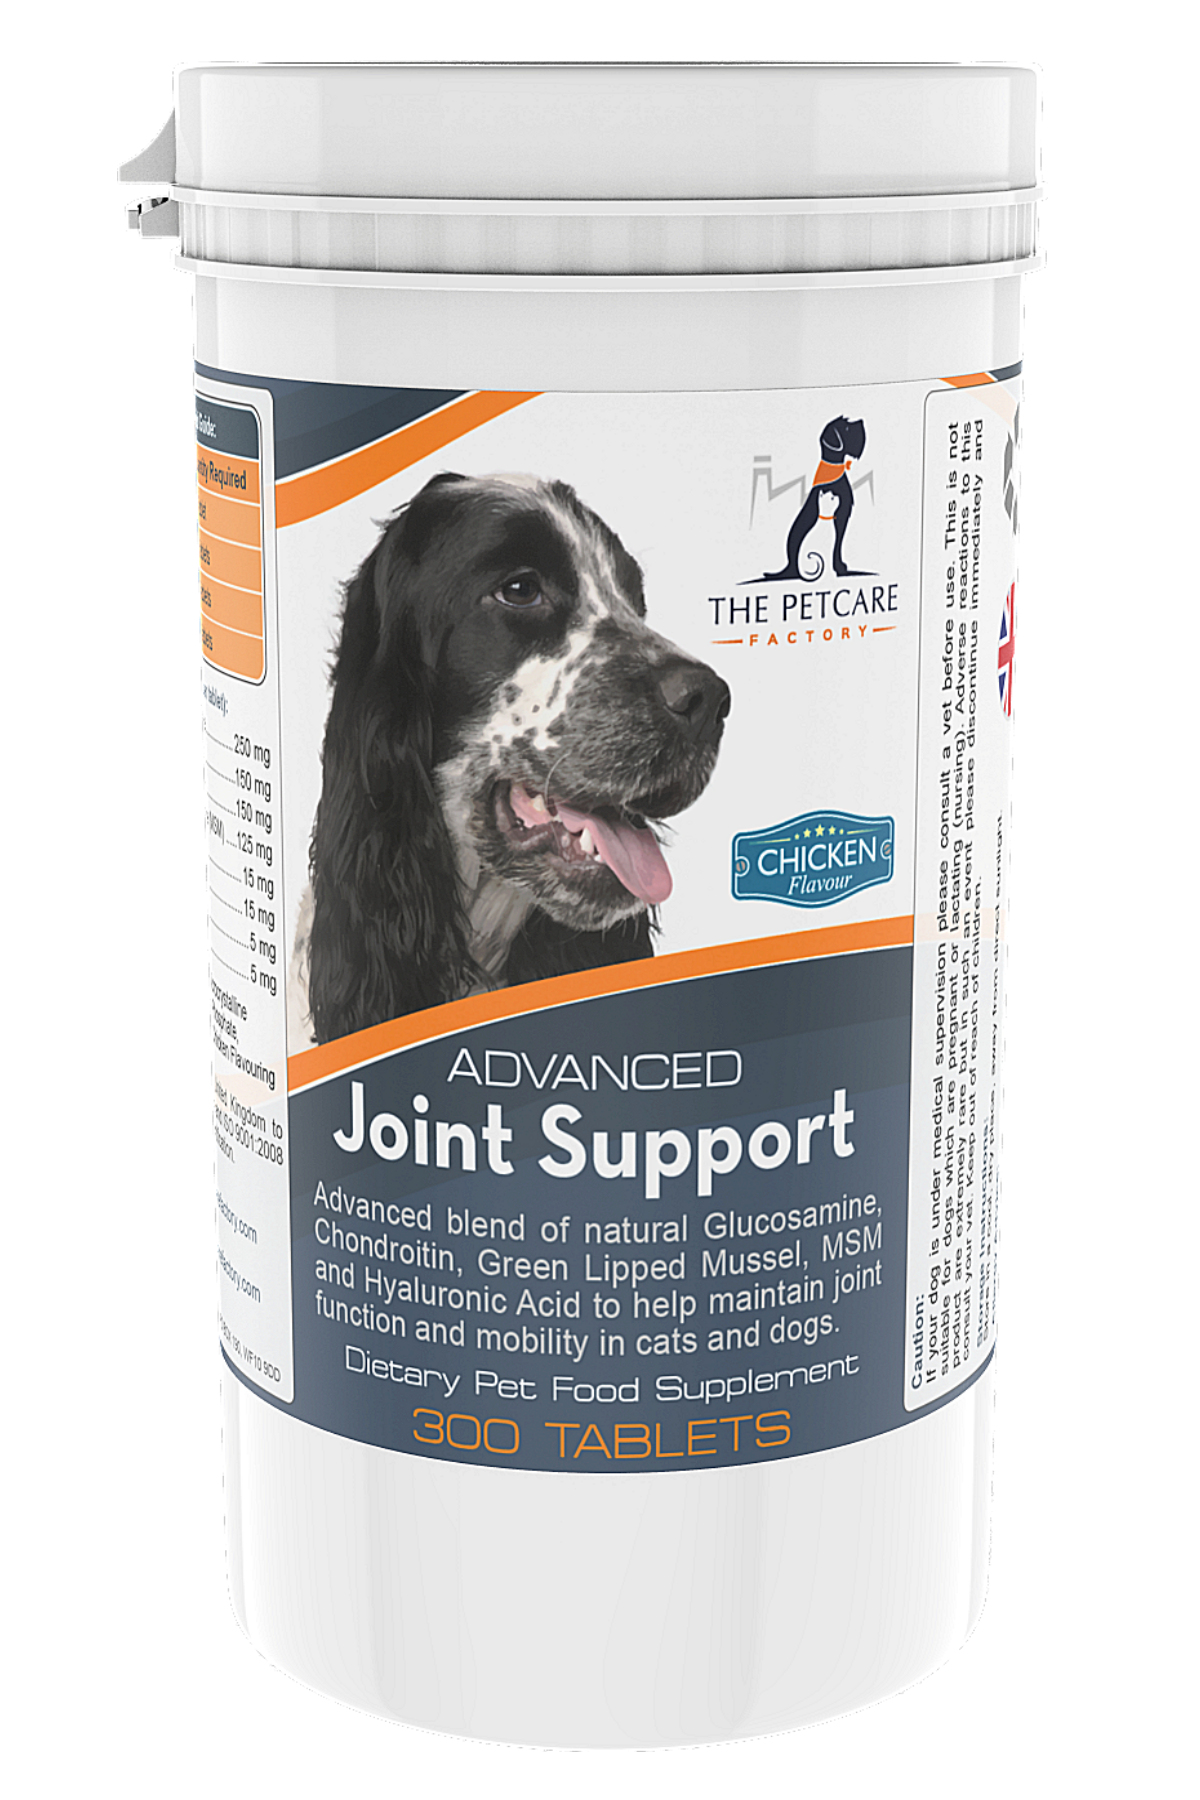 Advanced Joint Support - Natural Glucosamine based supplement to support and maintain joint health